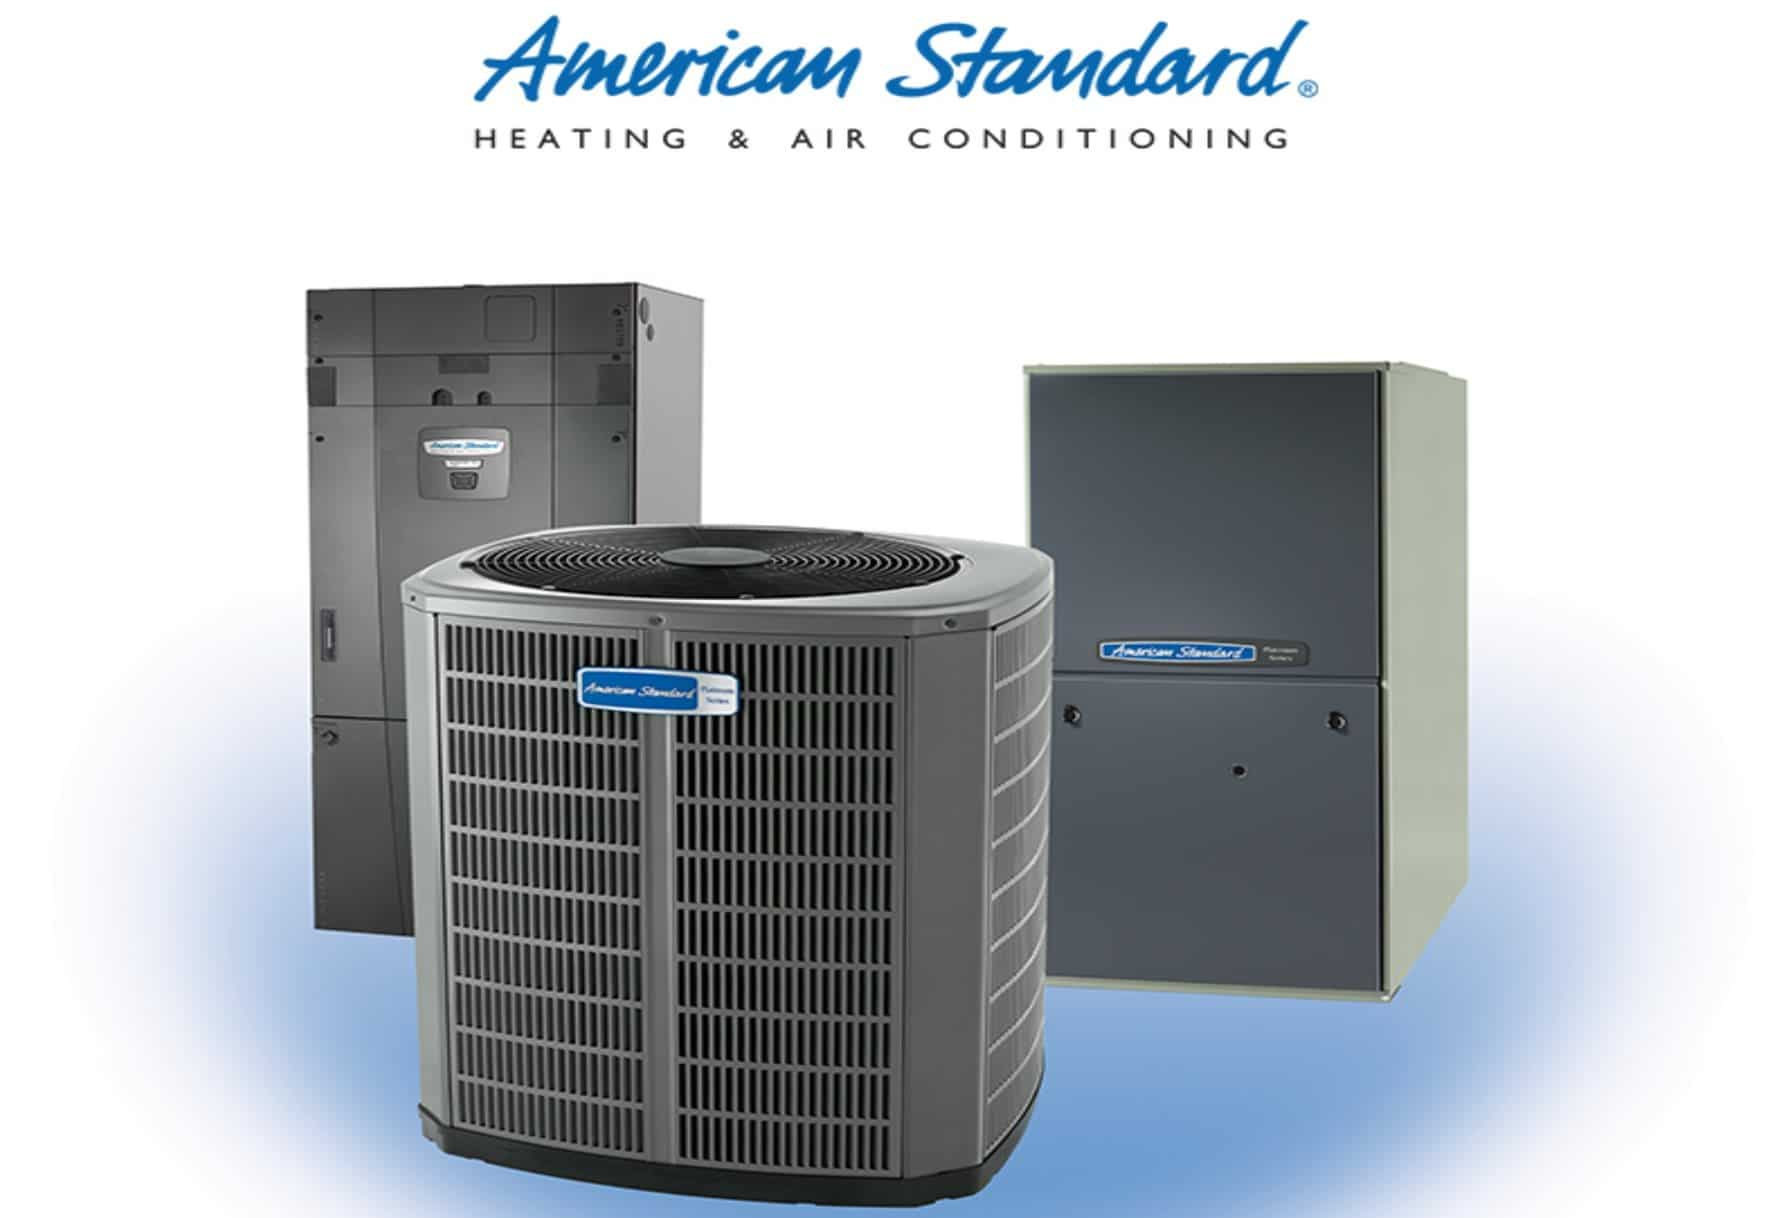 American Standard Air Conditioner Reviews and Buying Guides